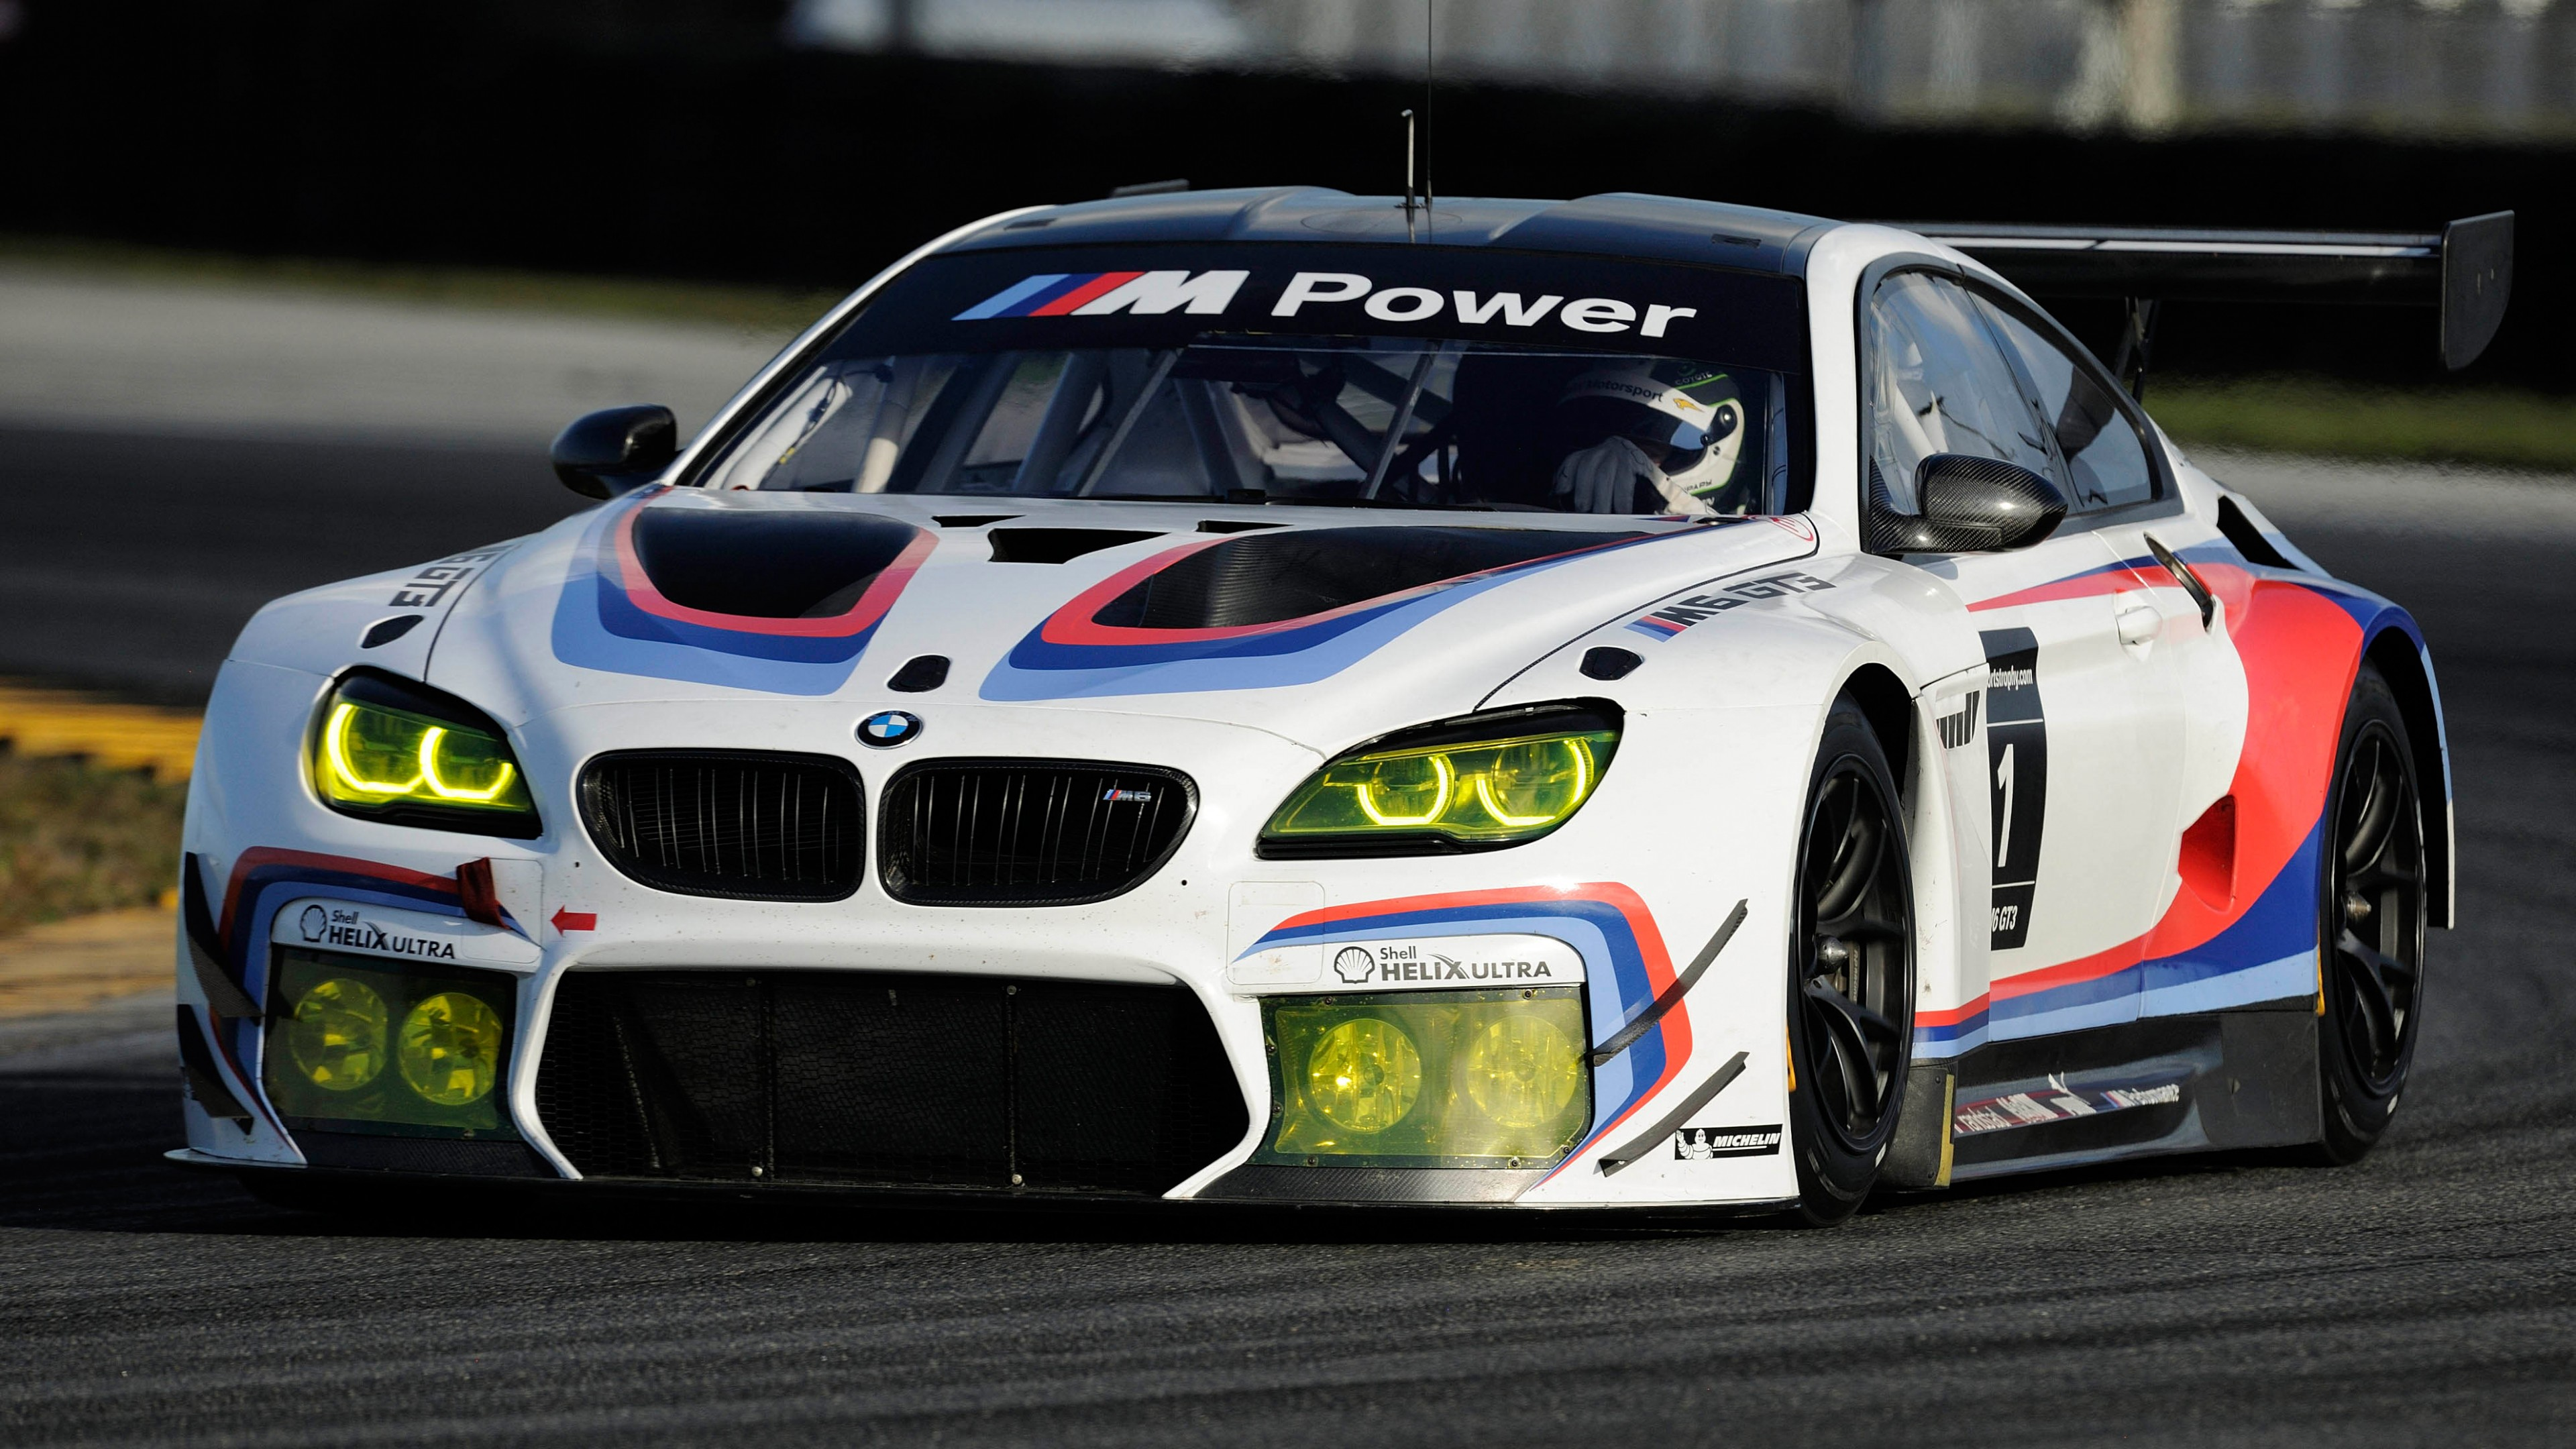 bmw m6 gt3 gtlm bmw motorsport 4k wallpaper hd car wallpapers id 7980. Black Bedroom Furniture Sets. Home Design Ideas